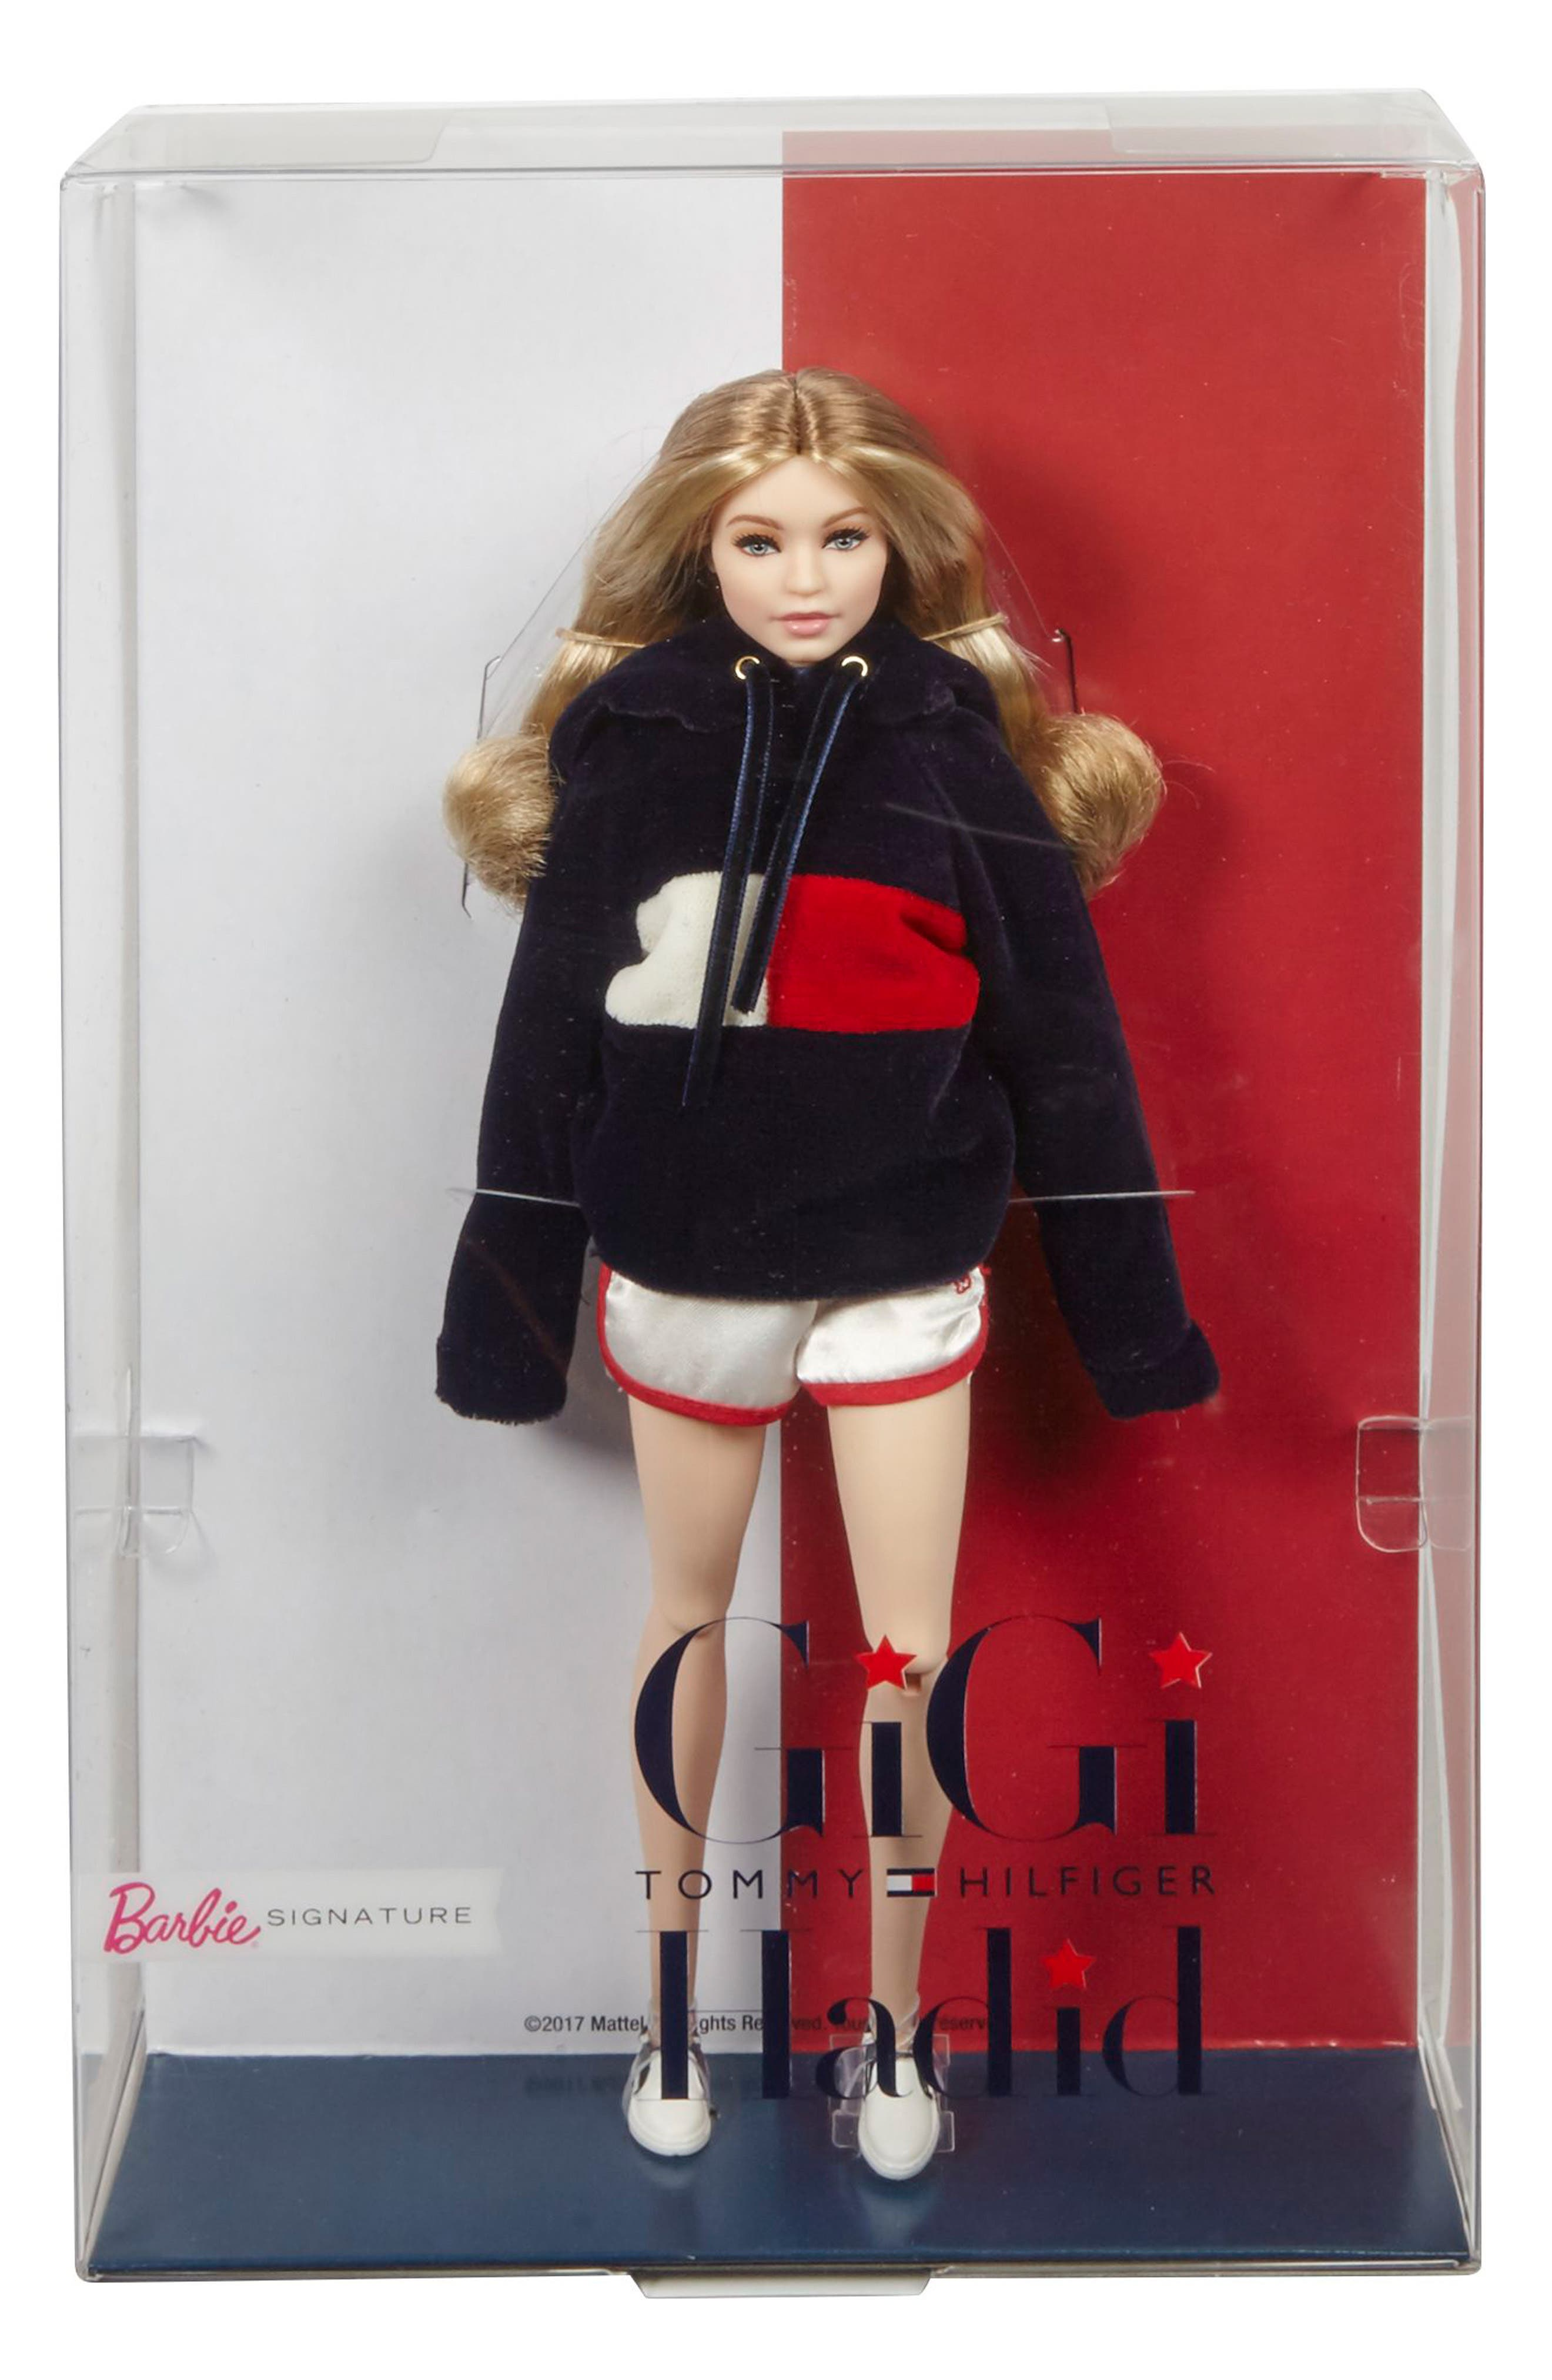 Barbie<sup>®</sup> Signature Tommy Hilfiger x Gigi Hadid Doll,                             Main thumbnail 1, color,                             Multi